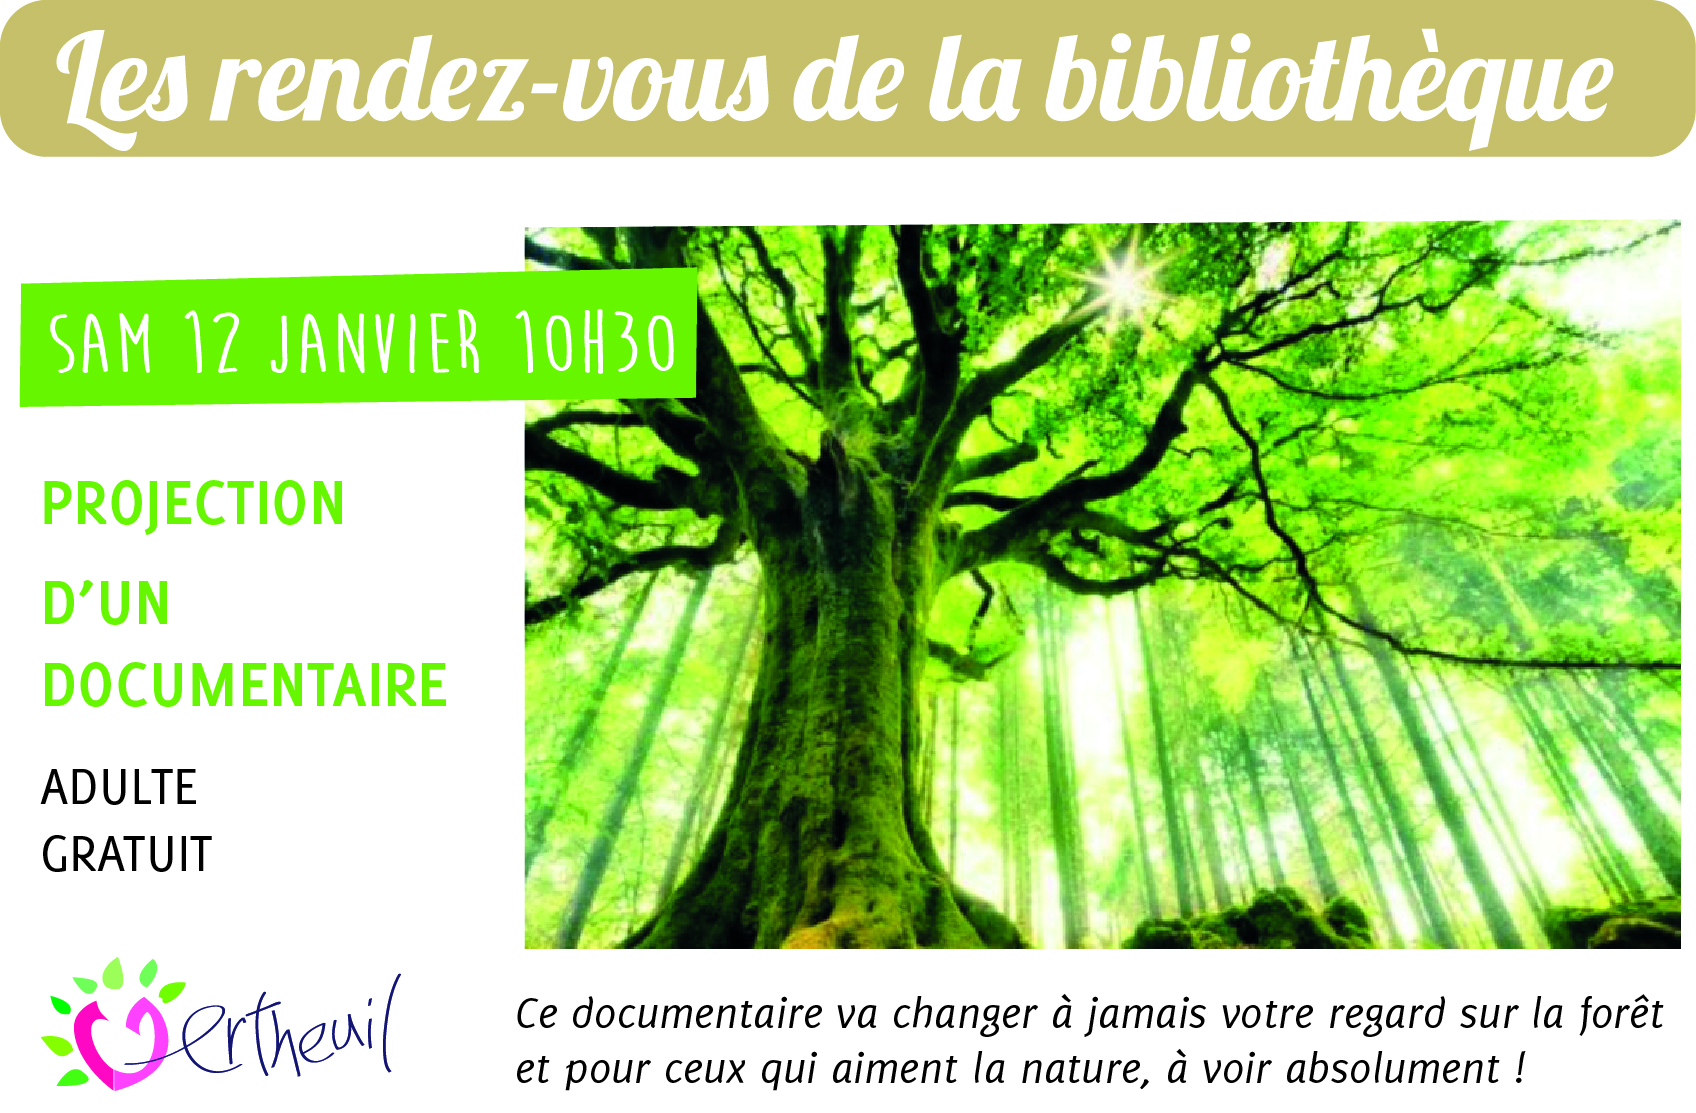 Projection d'un documentaire à la bibliothèque